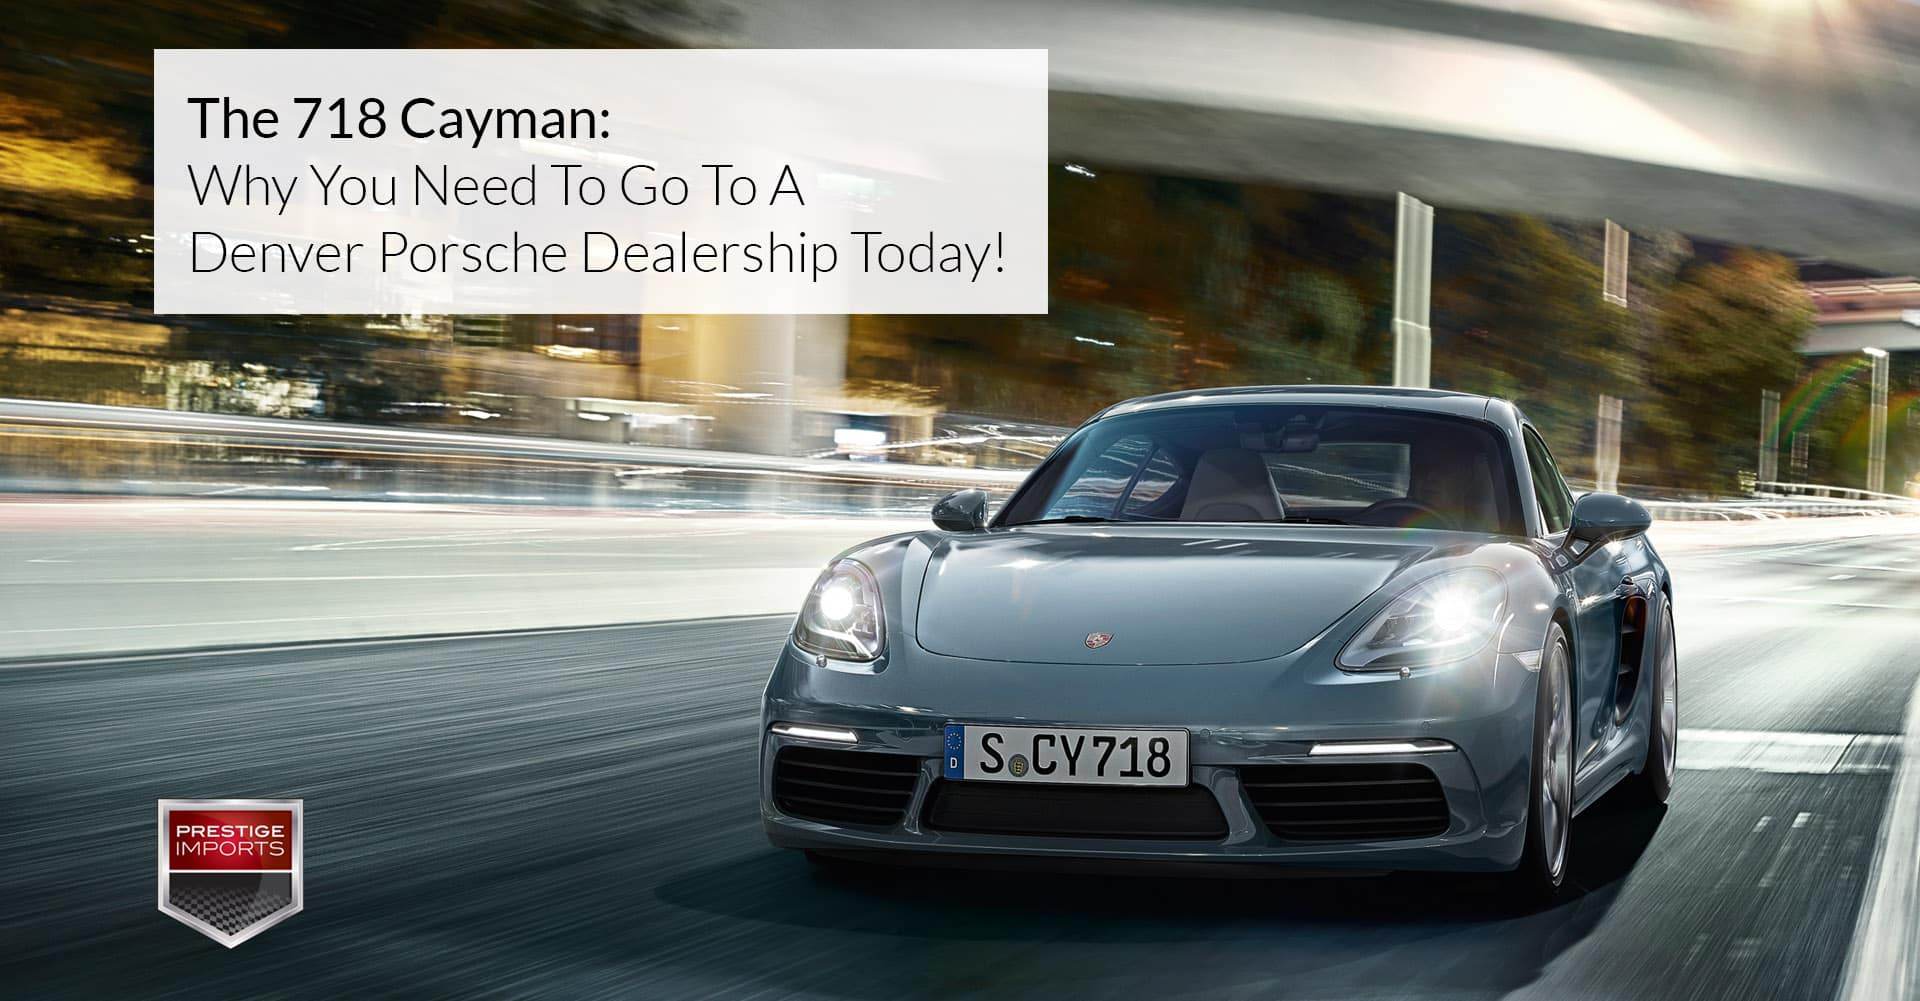 the 718 cayman get yours at a denver porsche dealership today